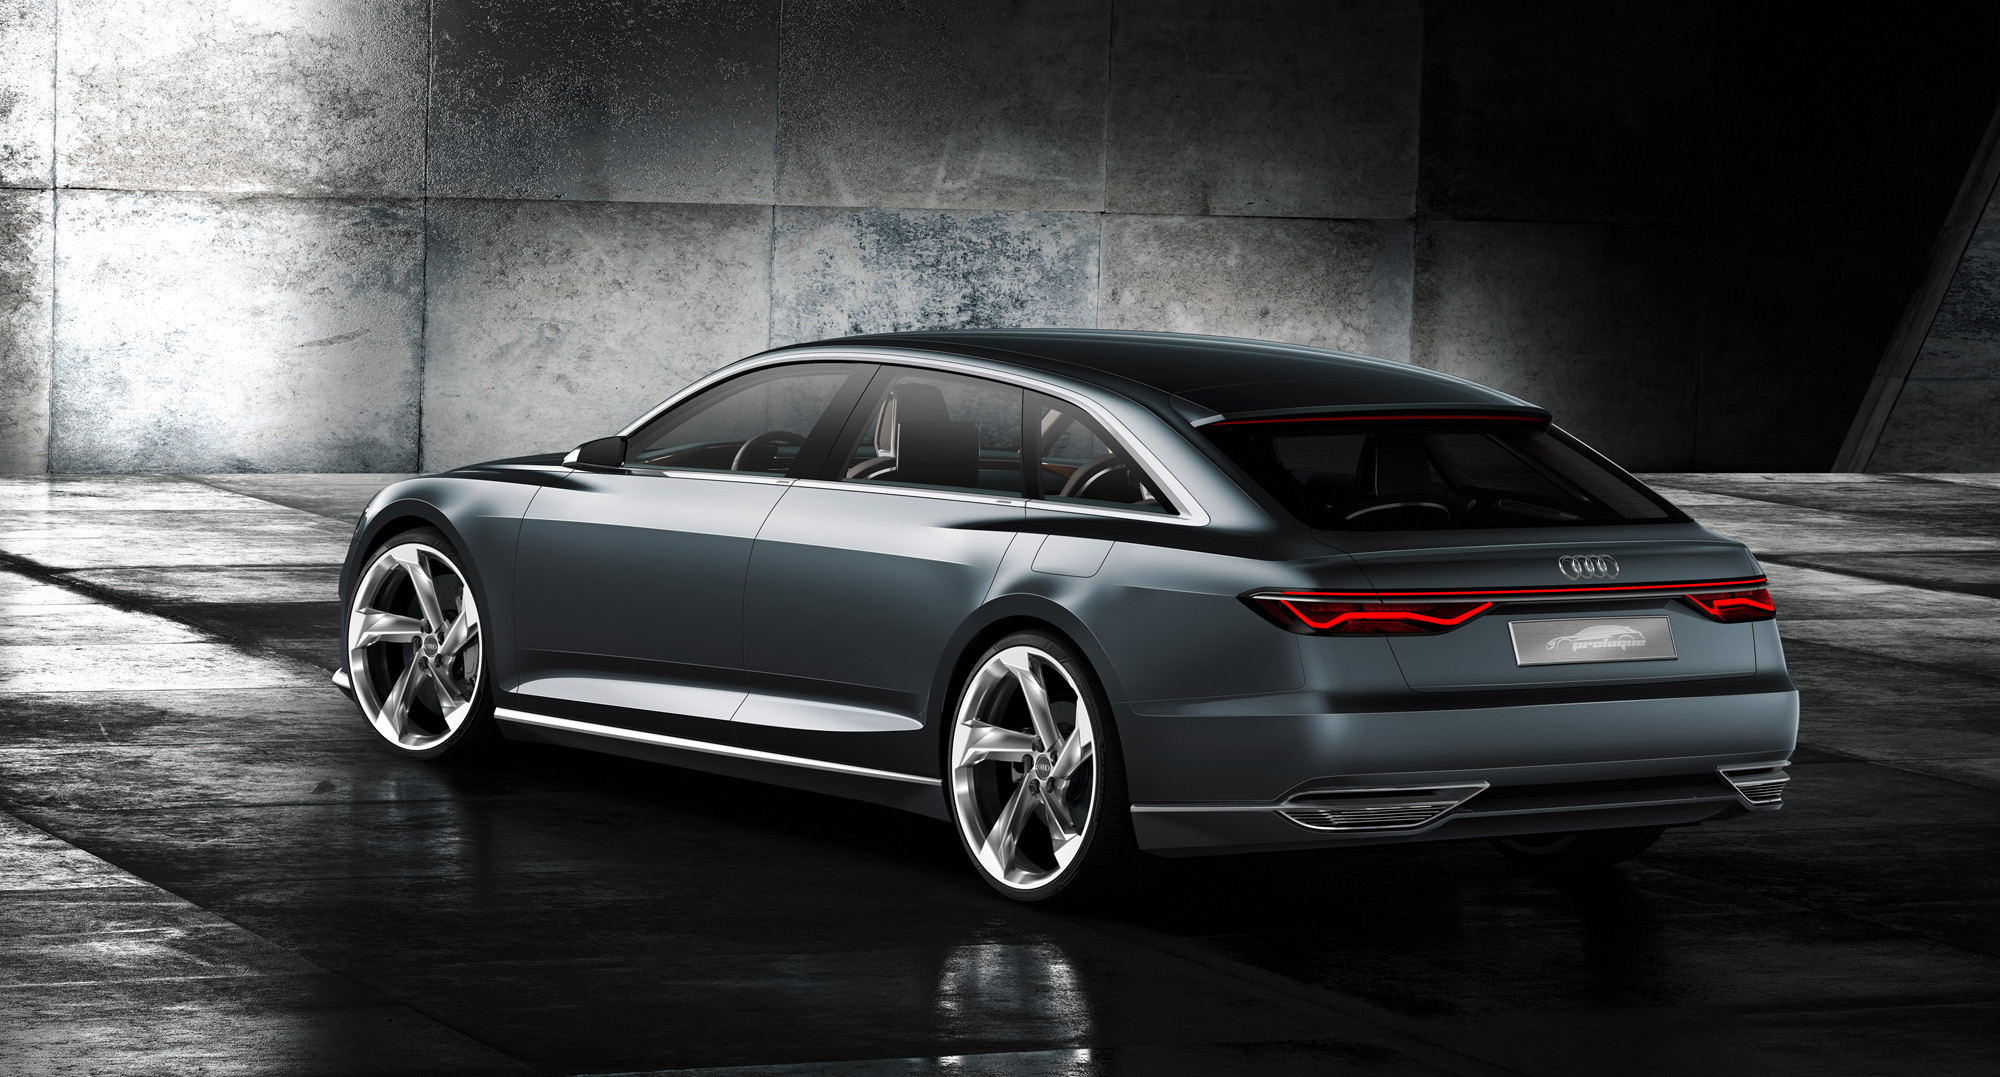 Futuristisches Design der Audi prologue Avant-Heckpartie